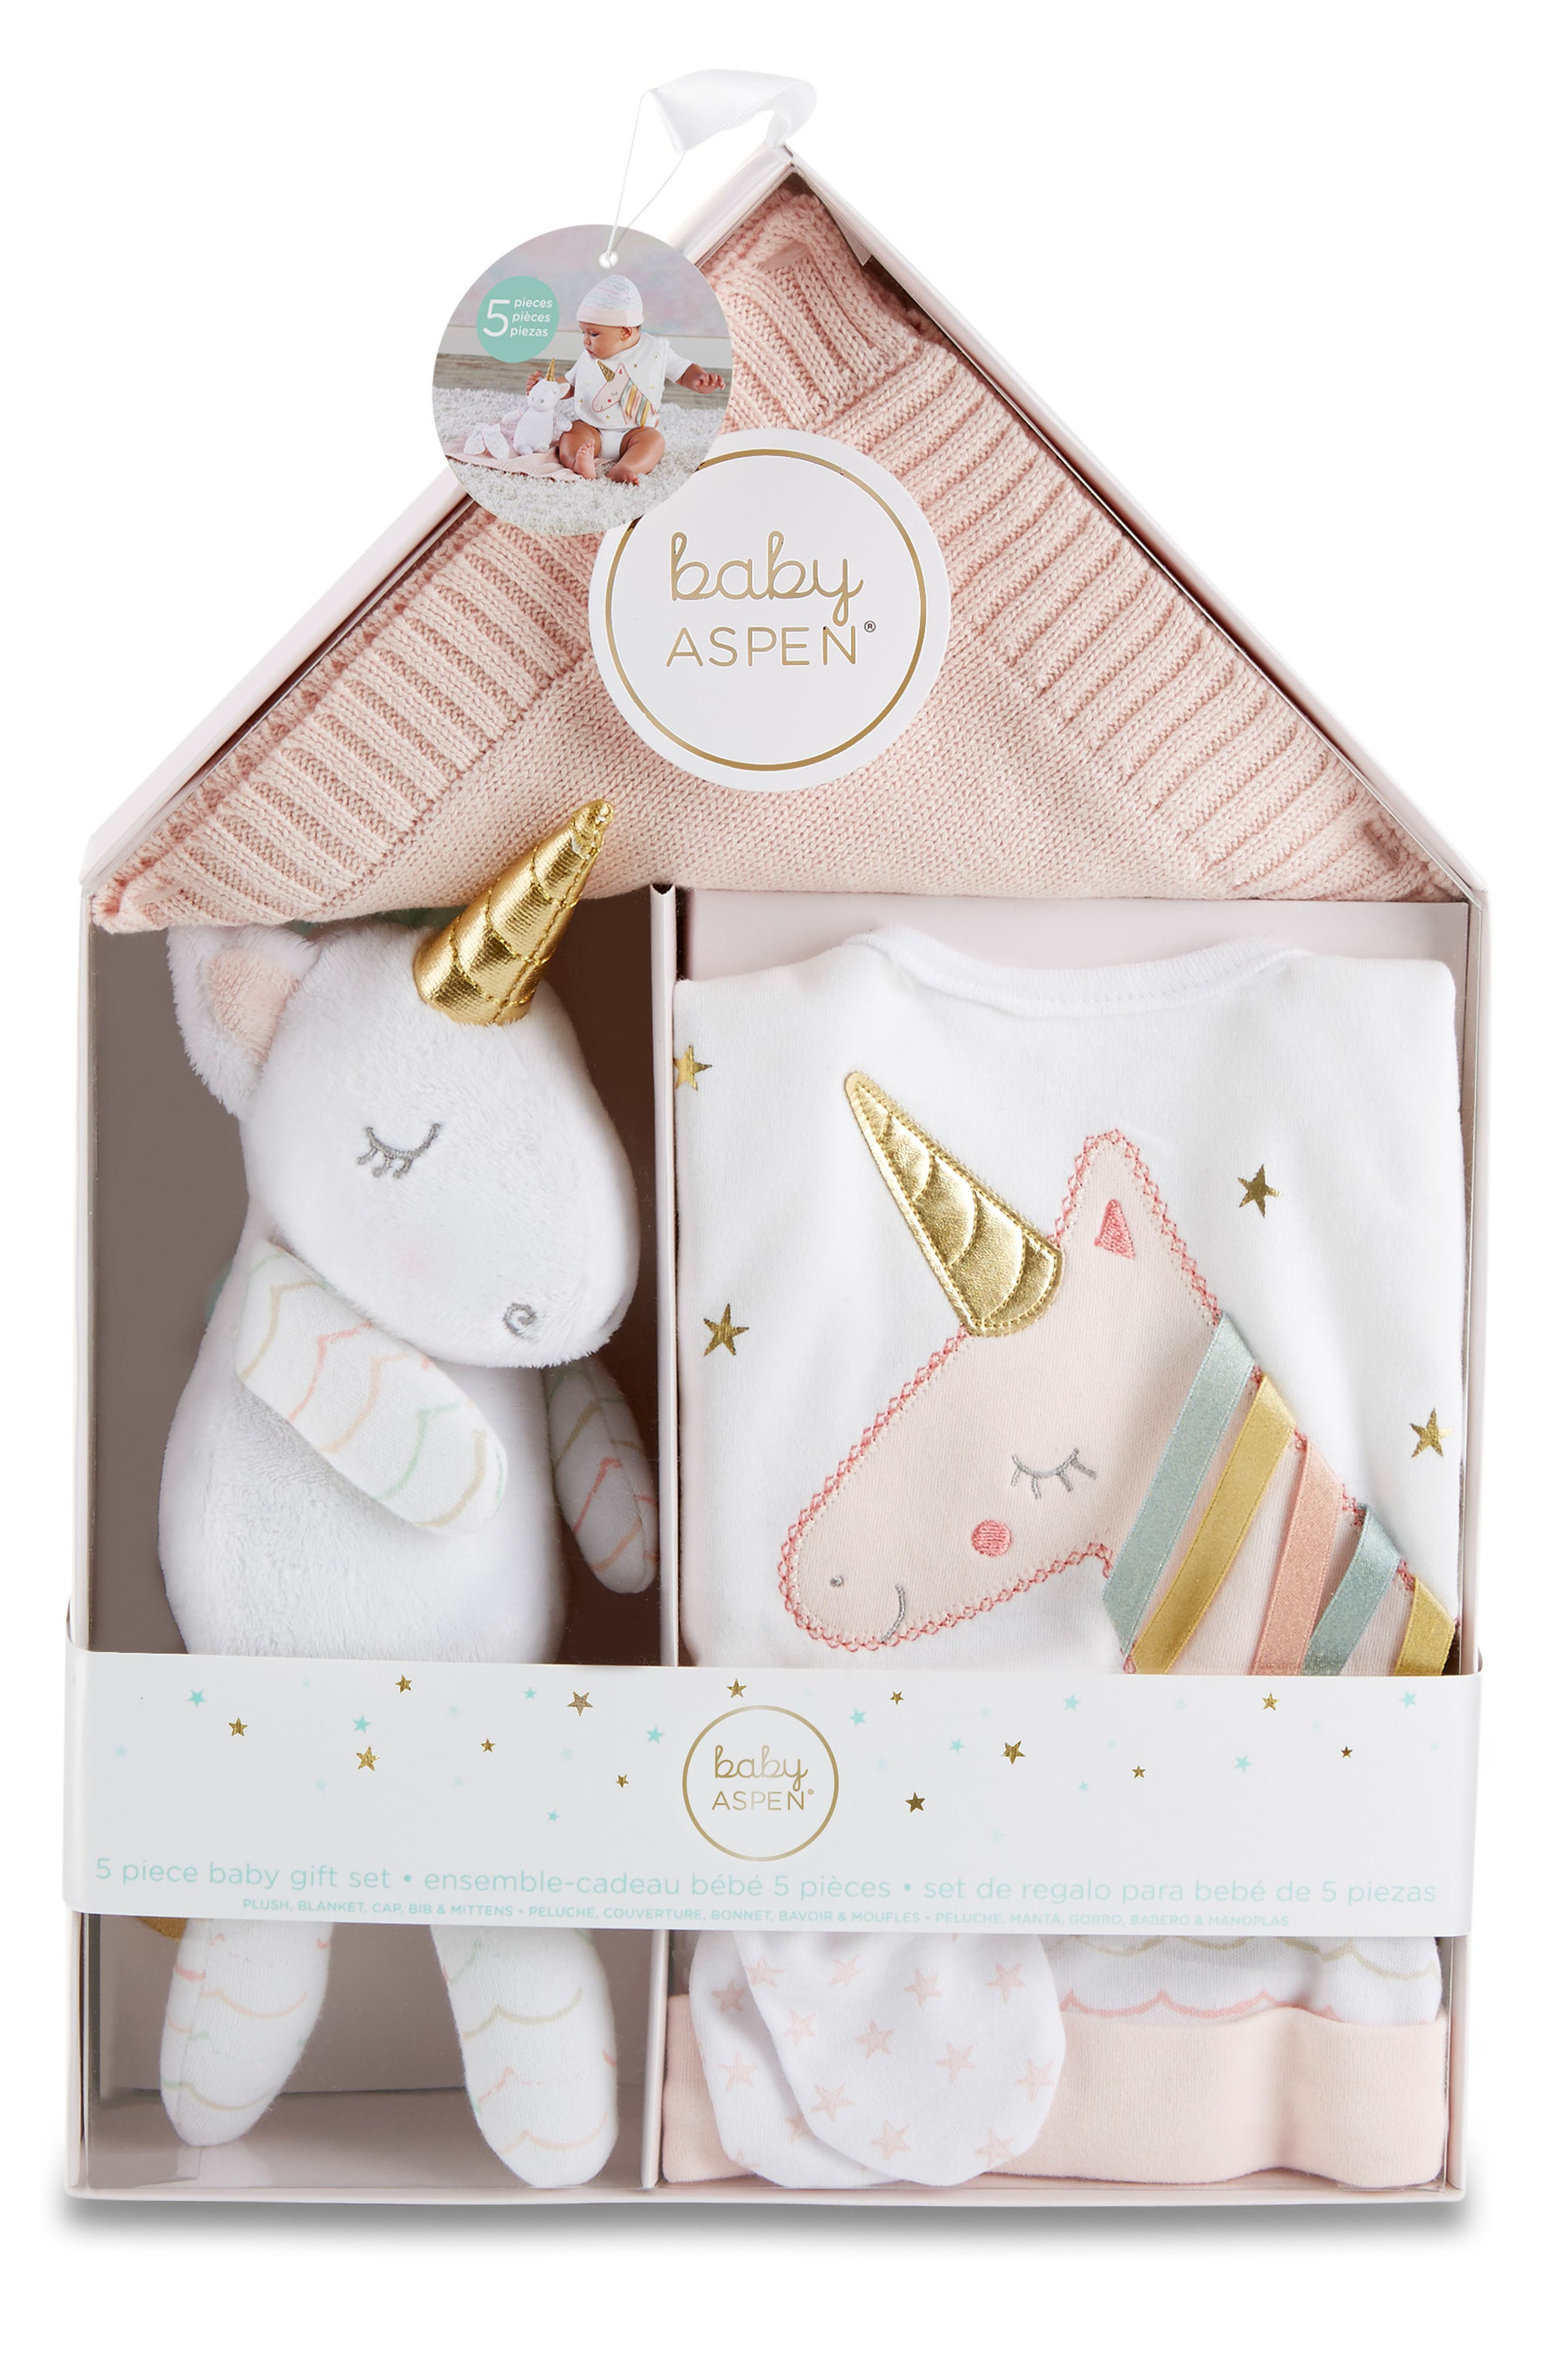 Baby Aspen Simply Enchanted 5Piece Gift Set Size One Size  Pink